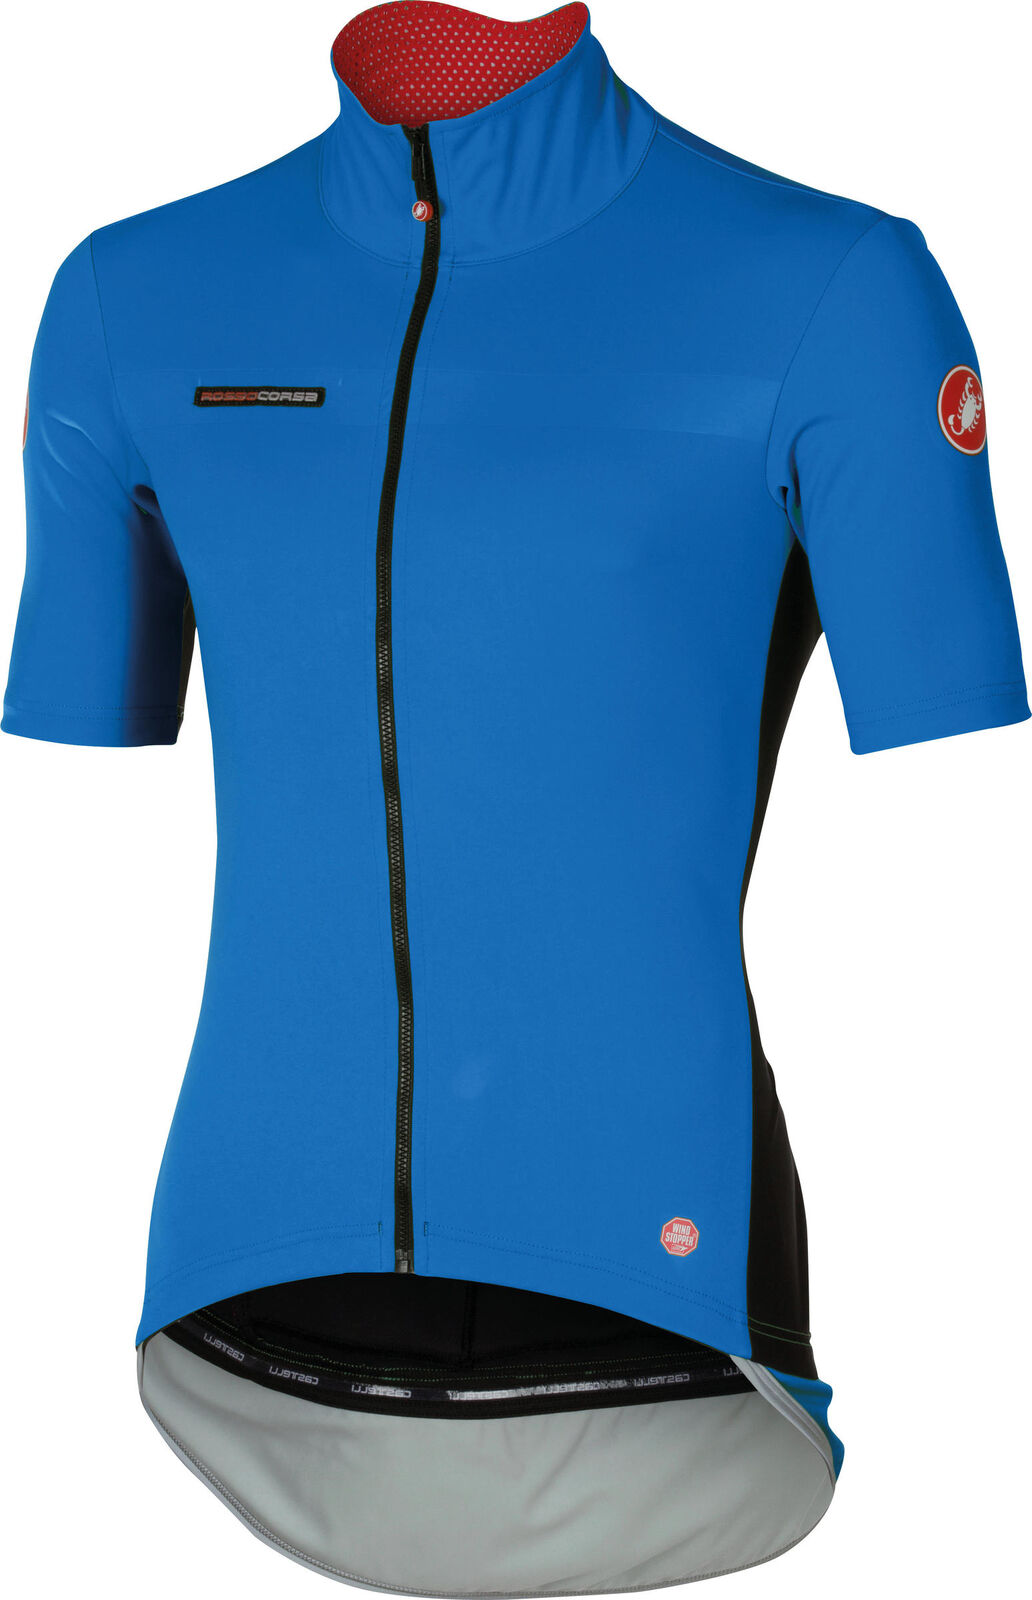 New Castelli Perfetto Light Short Sleeve Windstopper Cycling Jersey XXL RRP